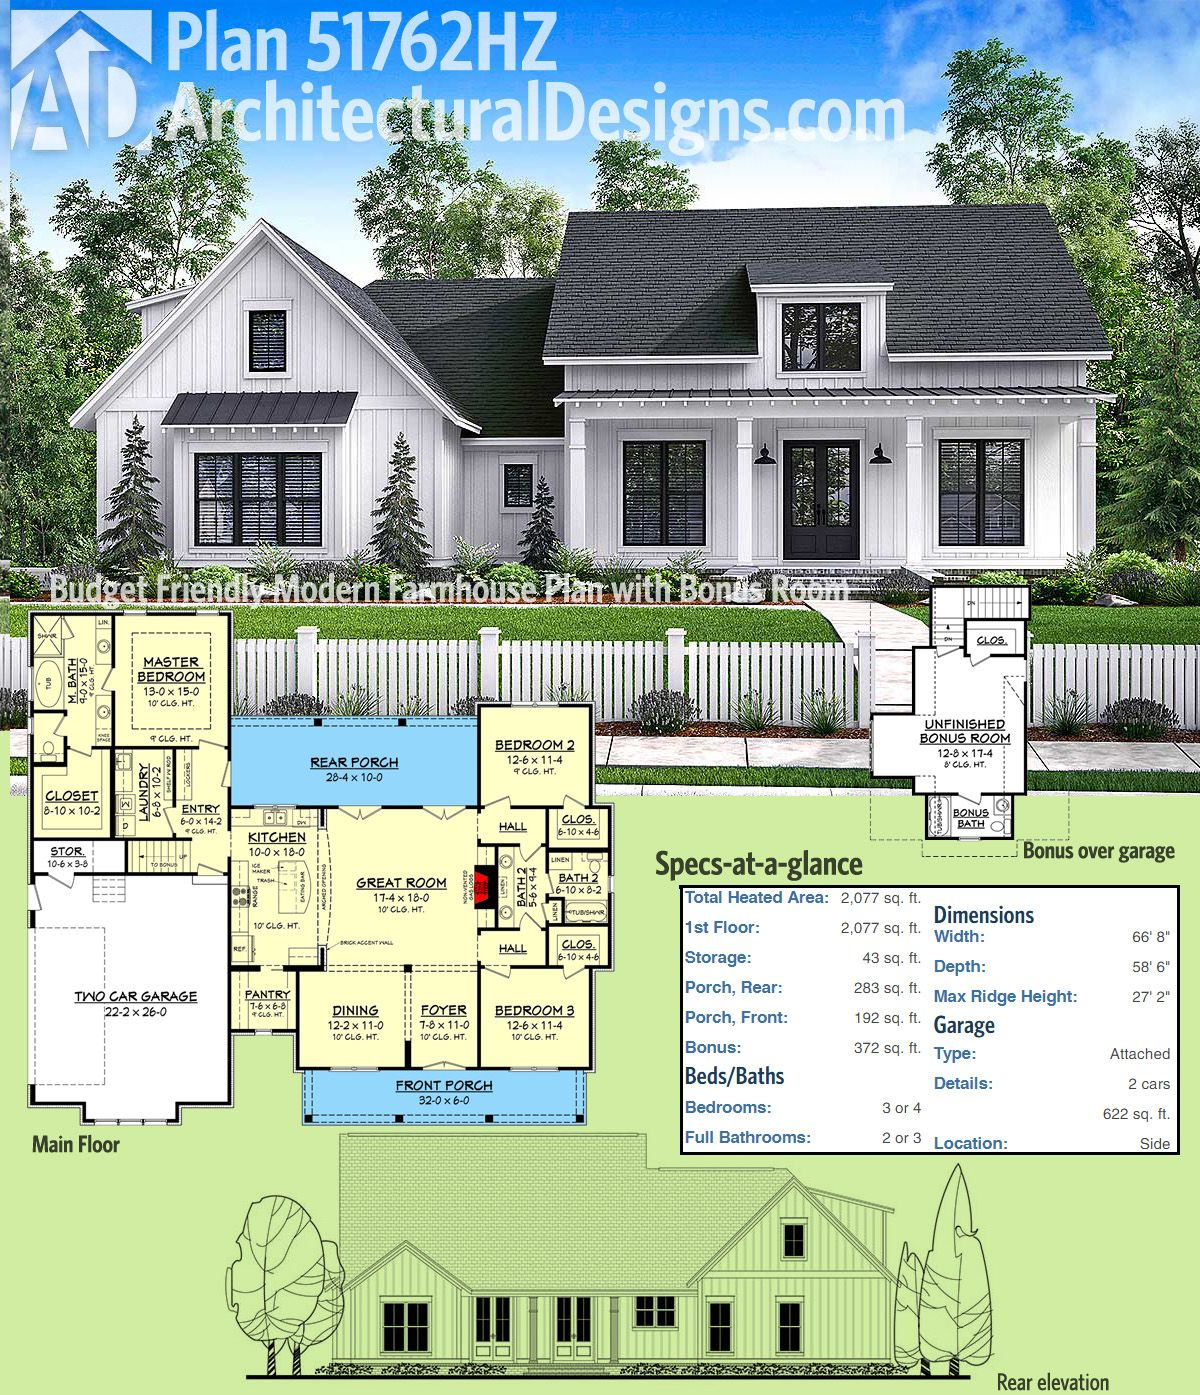 Bon Architectural Designs Modern Farmhouse Plan 51762HZ Gives You Just Over  2,000 Square Feet Of Heated Living